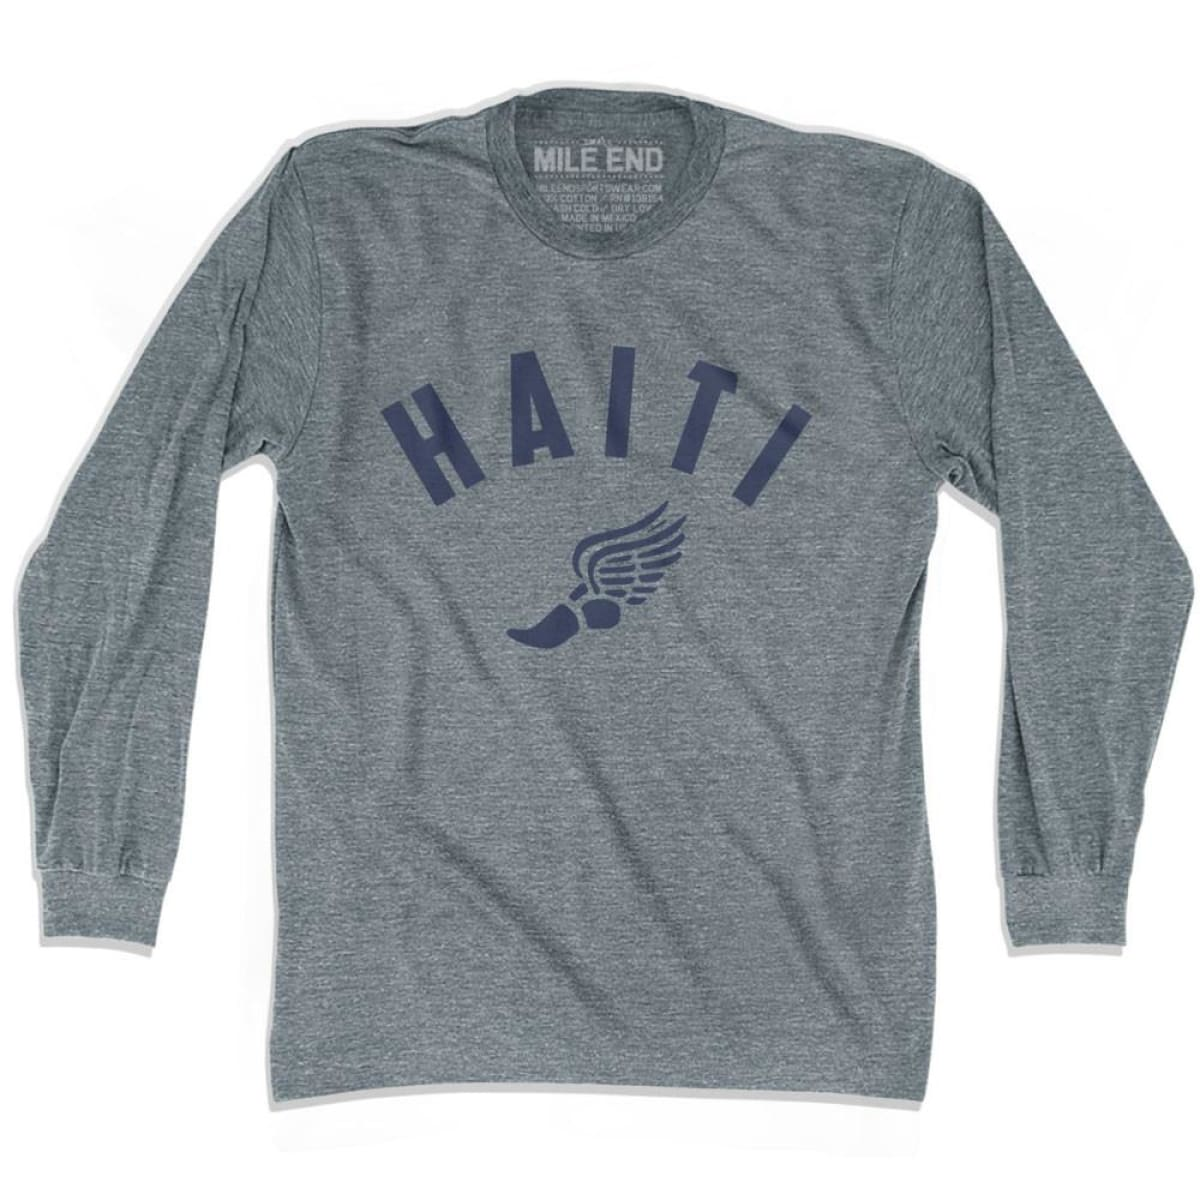 Haiti Track Long Sleeve T-shirt - Athletic Grey / Adult X-Small - Mile End Track